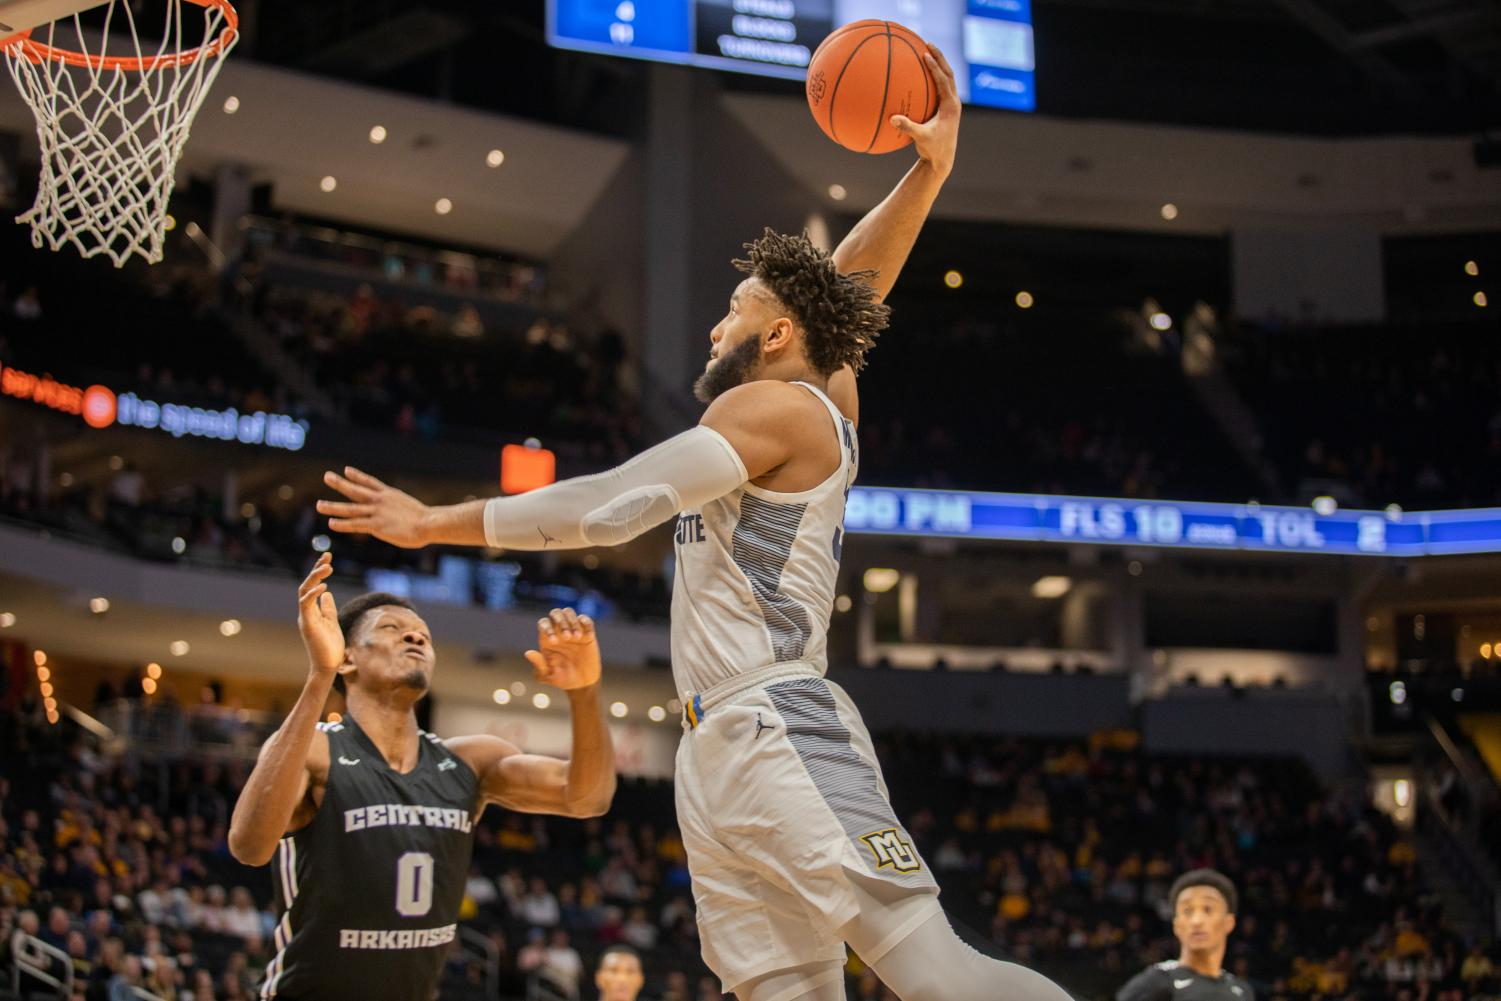 Redshirt senior Ed Morrow attempts a dunk in the second half of Marquette's 52-point win over Central Arkansas Dec. 28 at Fiserv Forum.